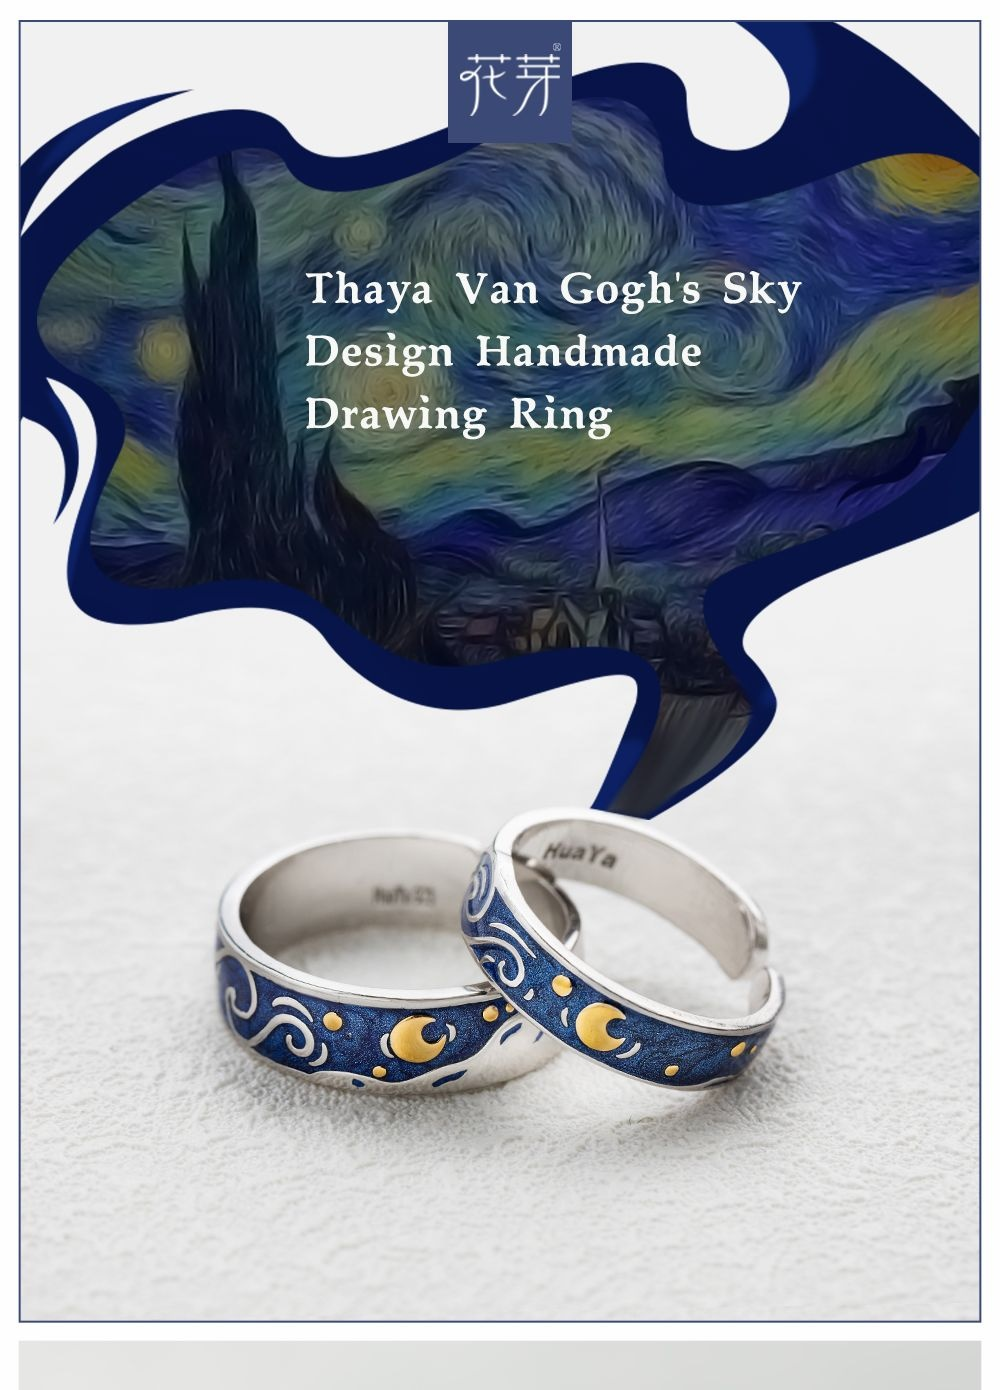 Thaya Van Gogh's Sky Design Handmade Drawing Ring Couple handmade rings, Drawing Ring